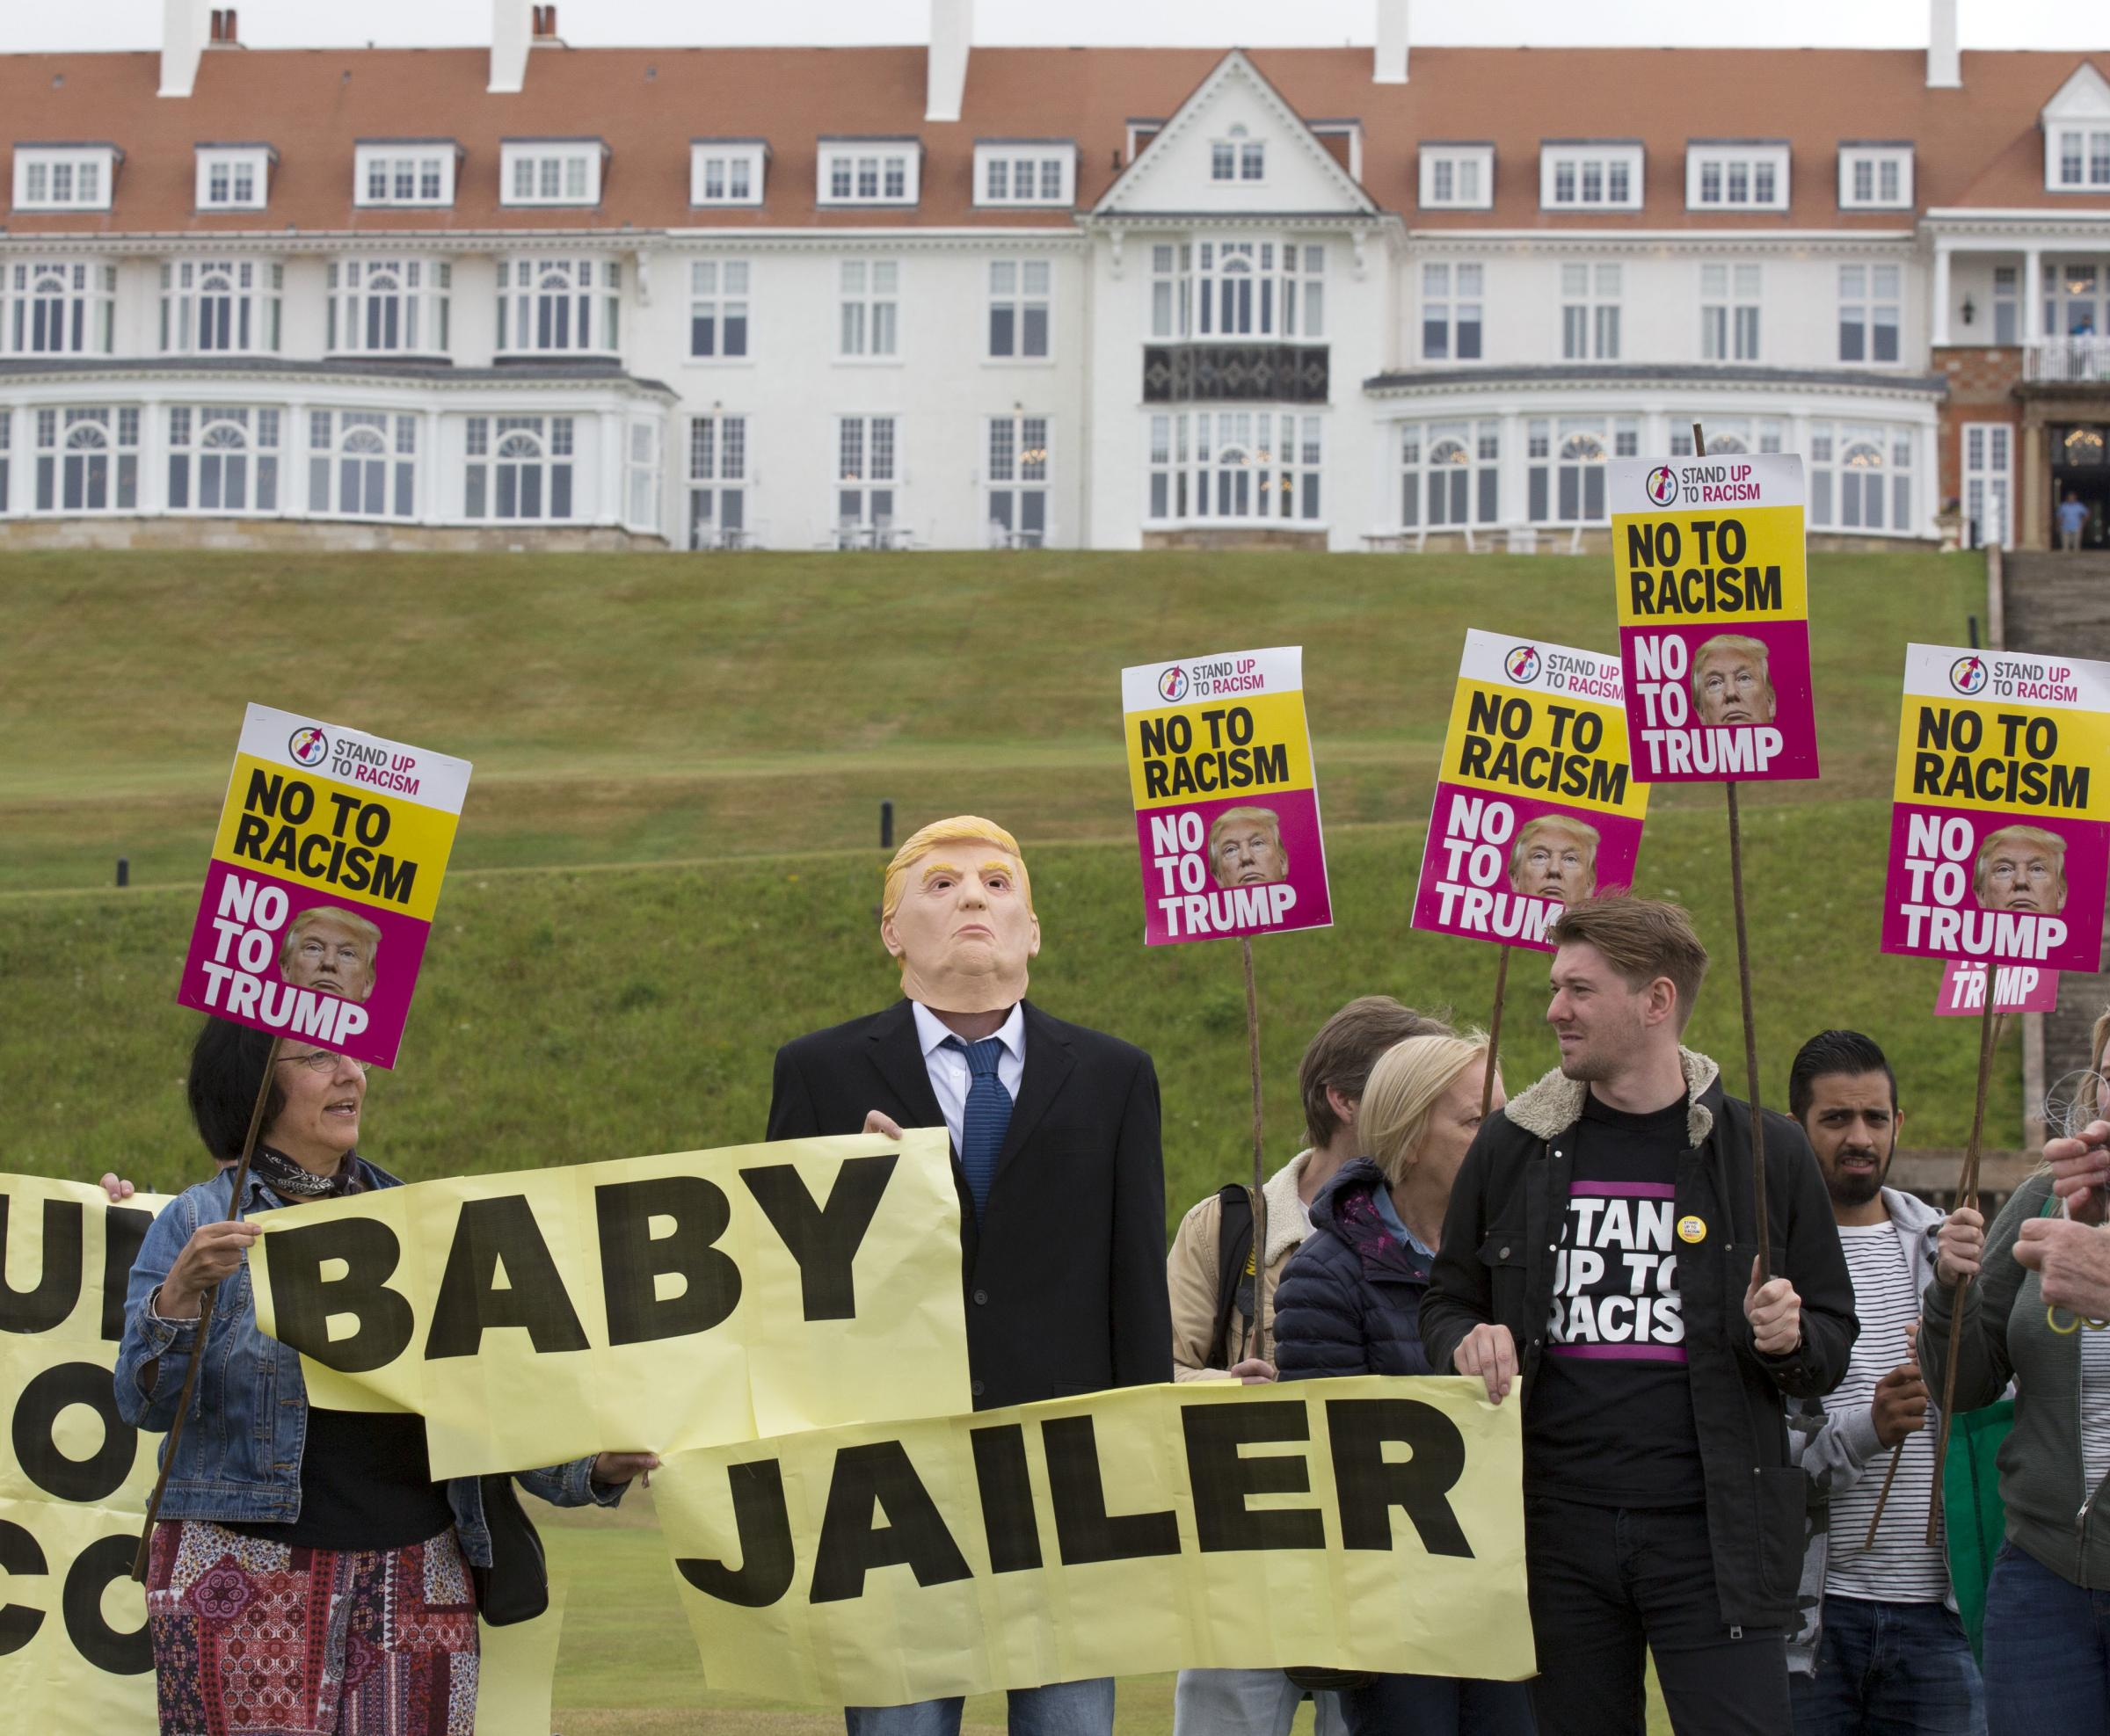 Stand Up to Racism activists at Turnberry, where Trump is thought to be spending most of his weekend